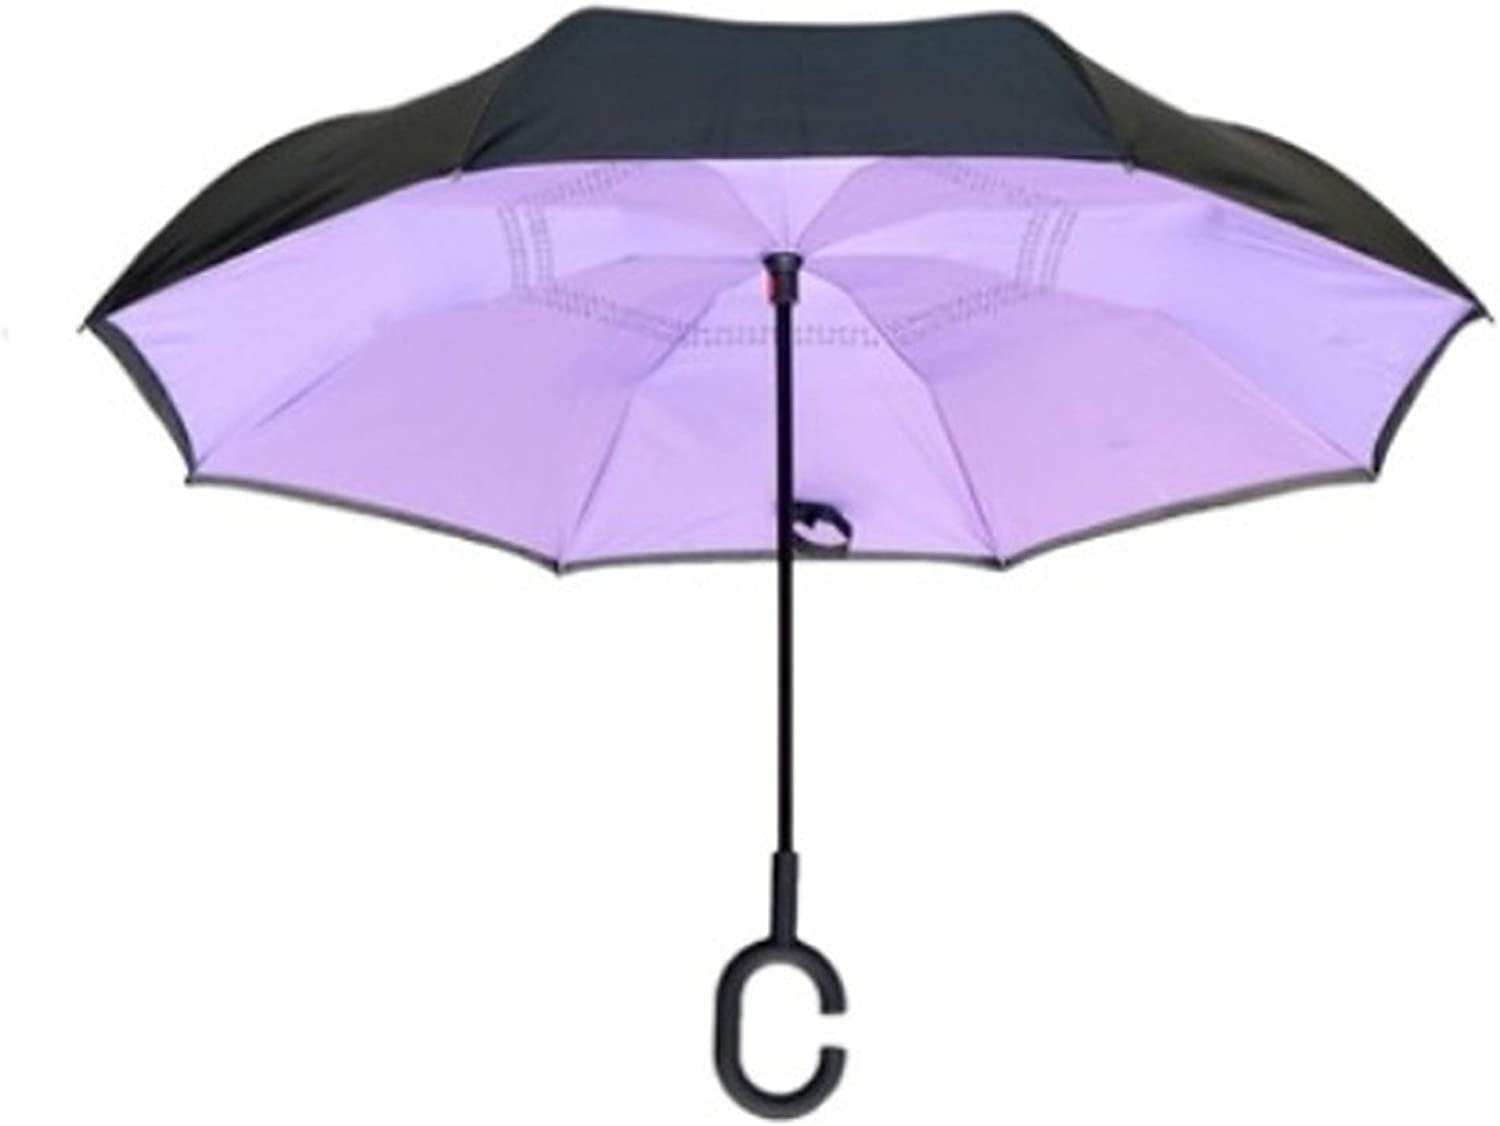 Double Layer Inverted Umbrella With C-Shaped Handle Squidward Tentacles Reverse Windproof Umbrella UV Protection Upside Down Umbrella